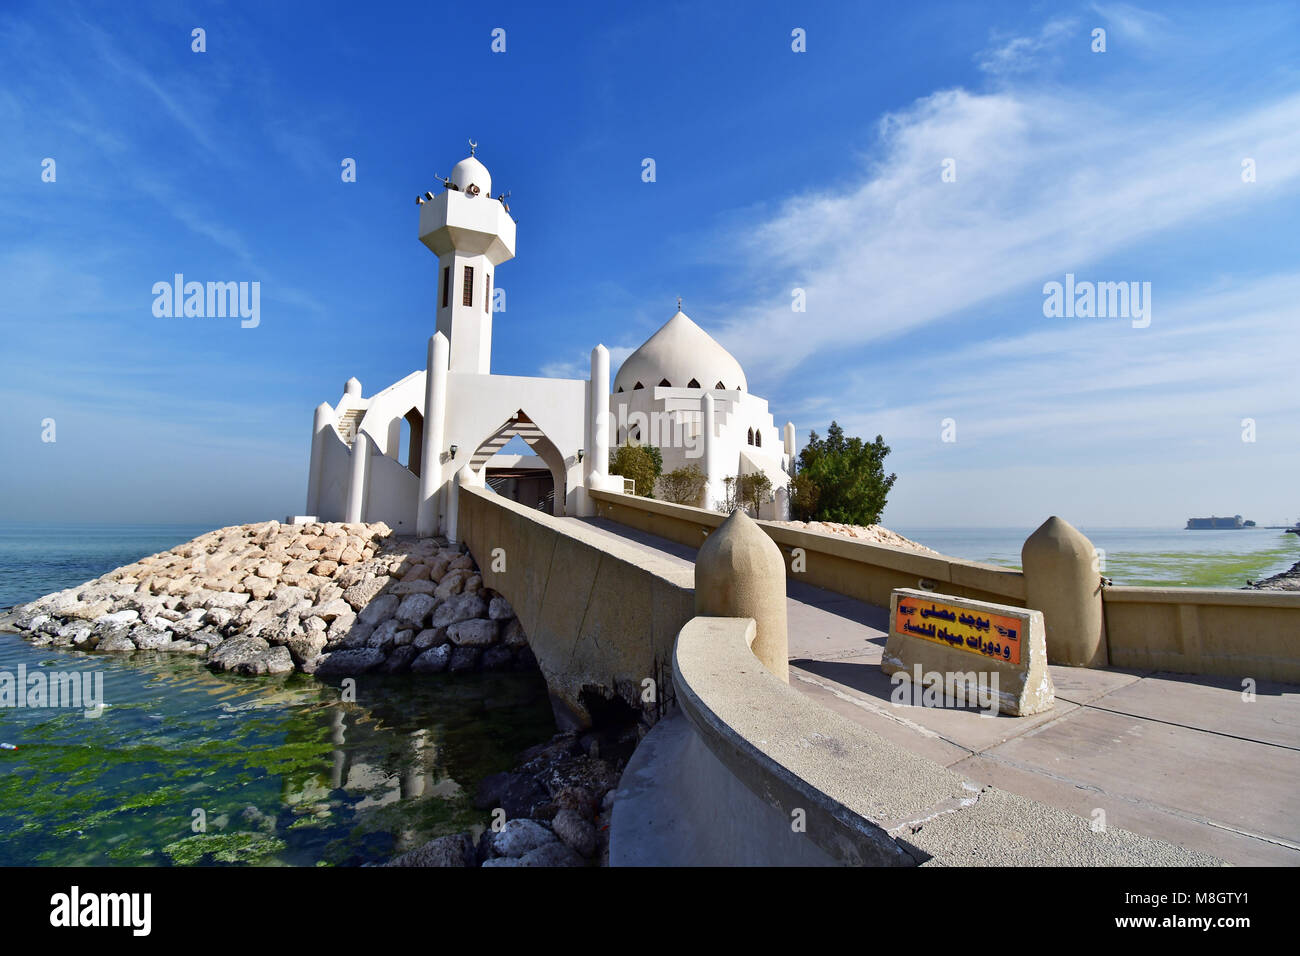 modern Architecture on mosque located on the beach front in Saudi Arabia - Stock Image